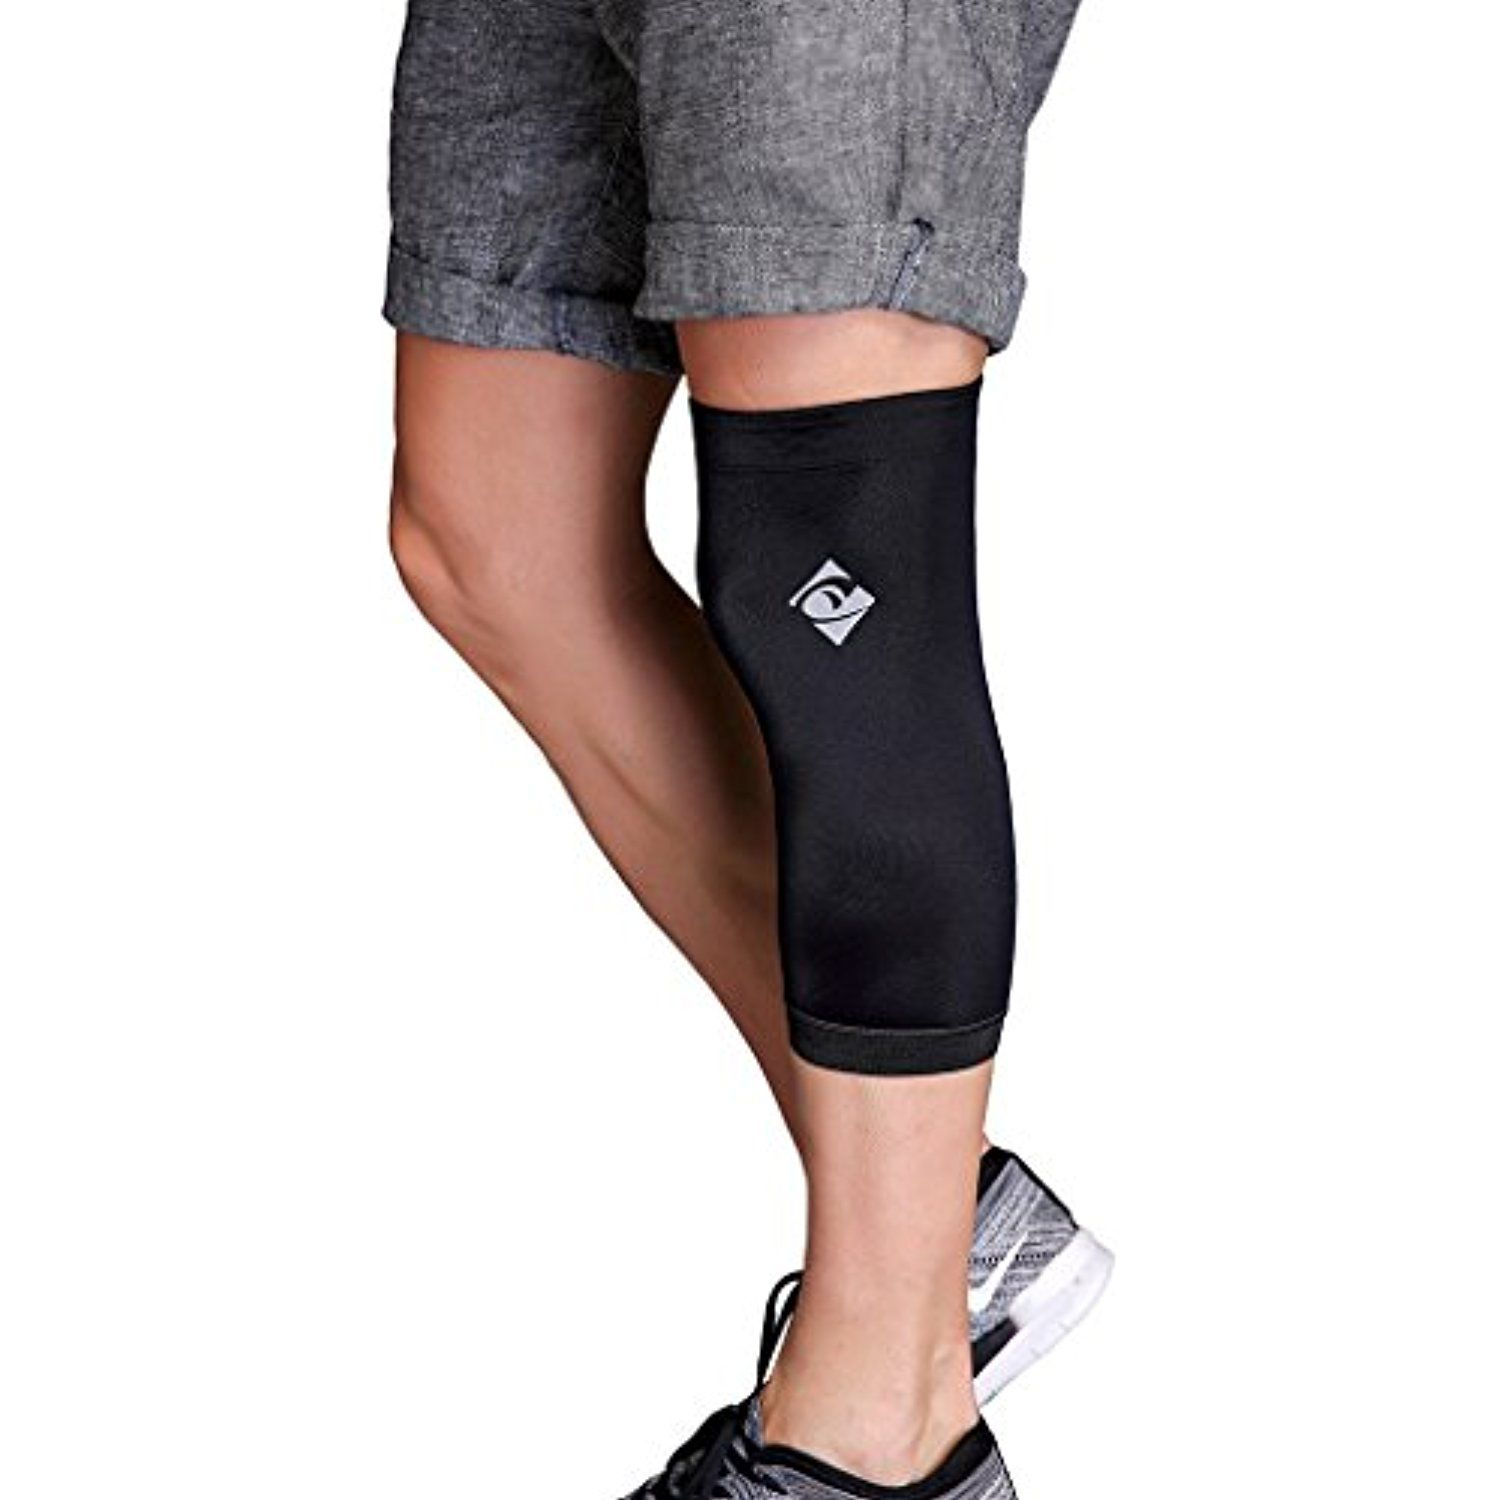 c5dfe31eae Copper Knee Brace With Infused Fit By Cotill - Knee Support Compression  Sleeve For Sports,